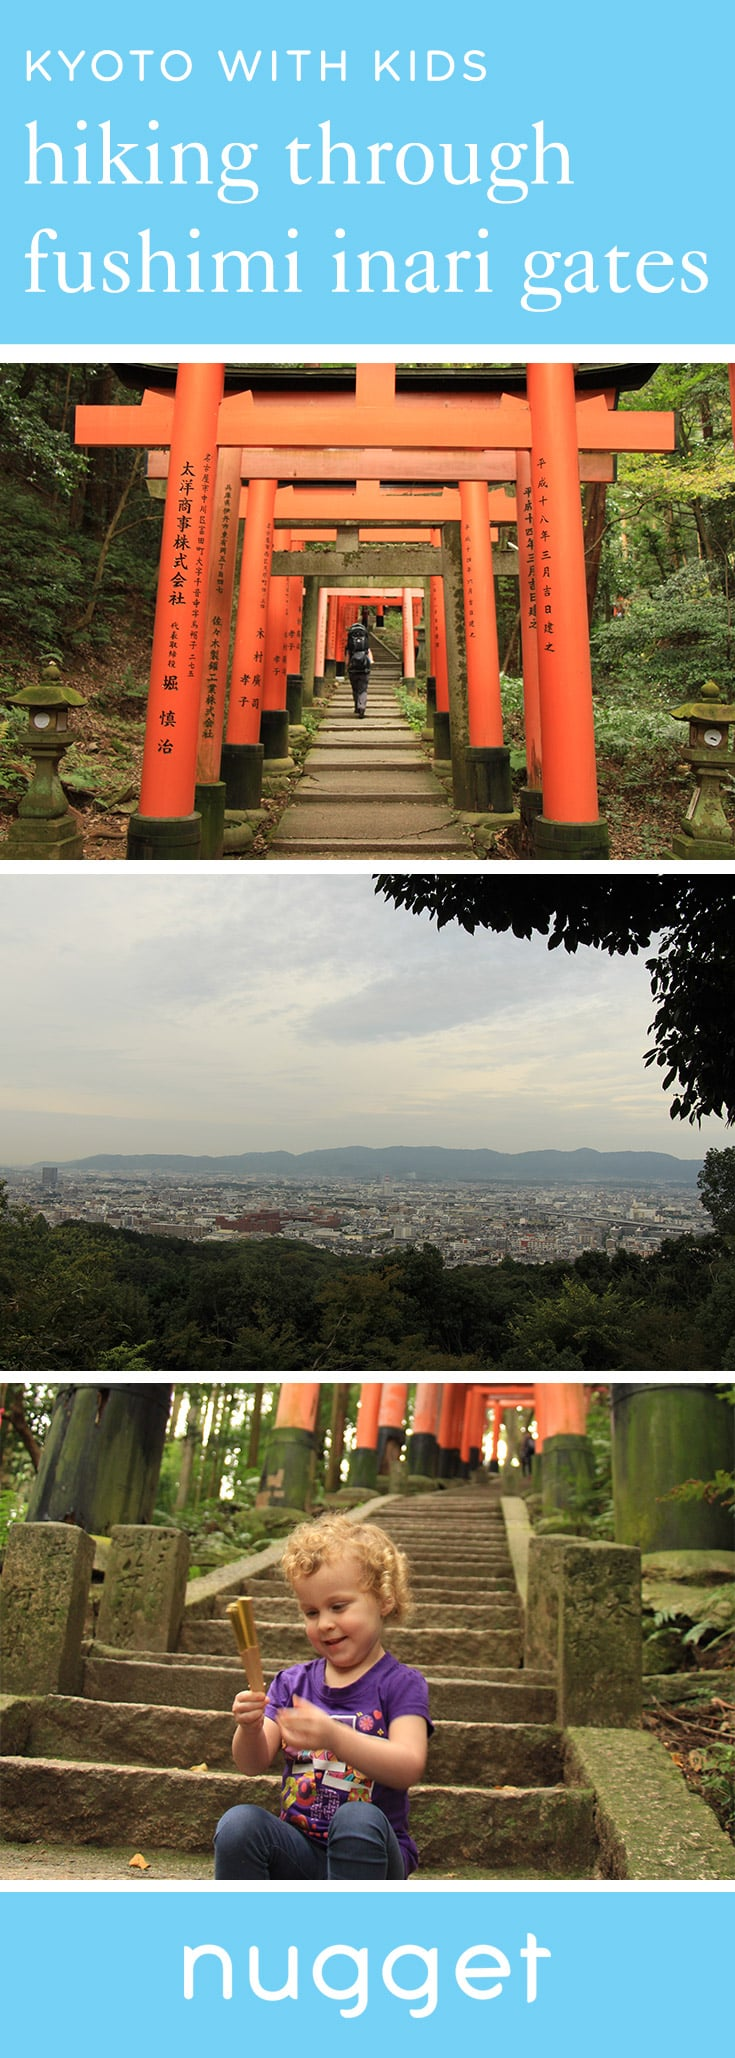 Kyoto for Kids: Hiking through Fushimi Inari Gates